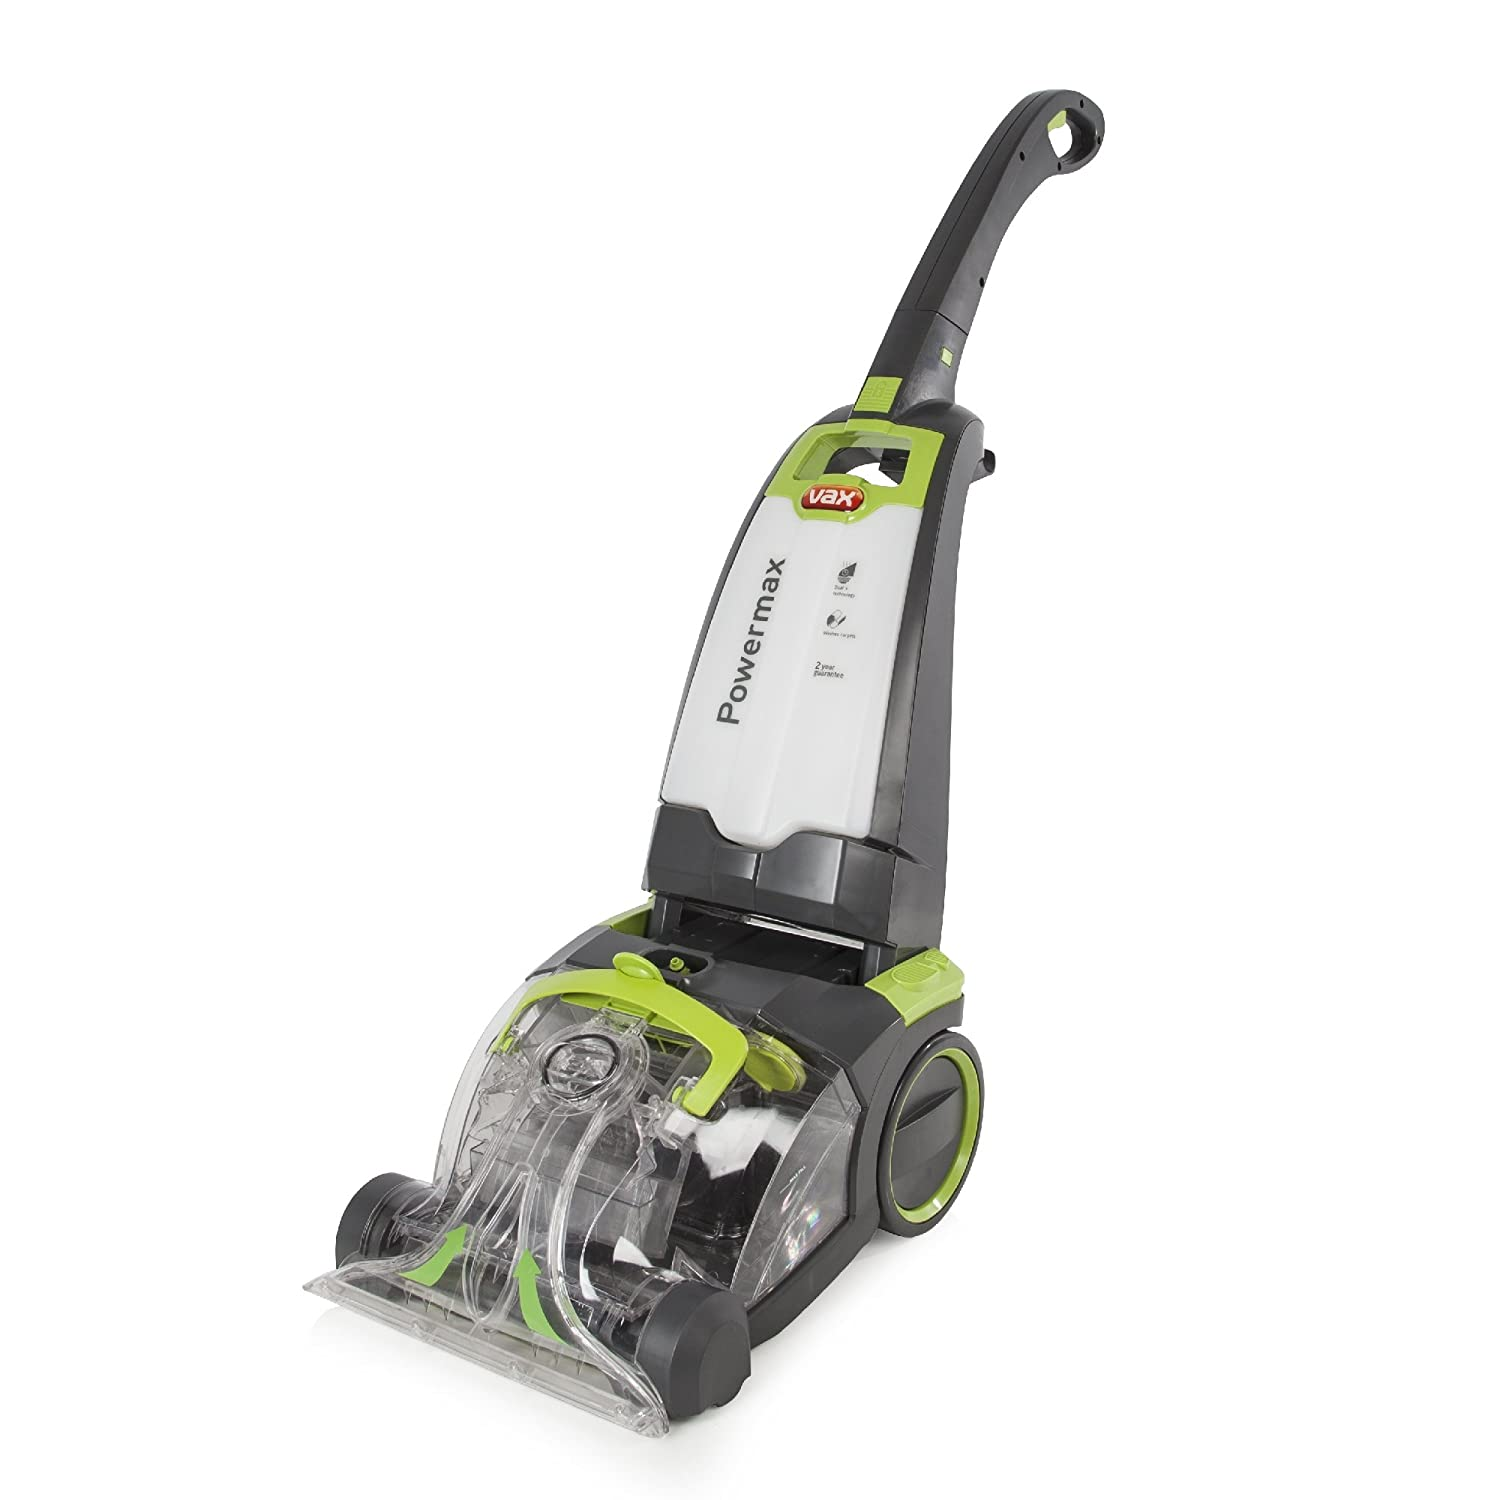 Vax Vrs21w Powermax Upright Carpet Cleaner 1000 Watt